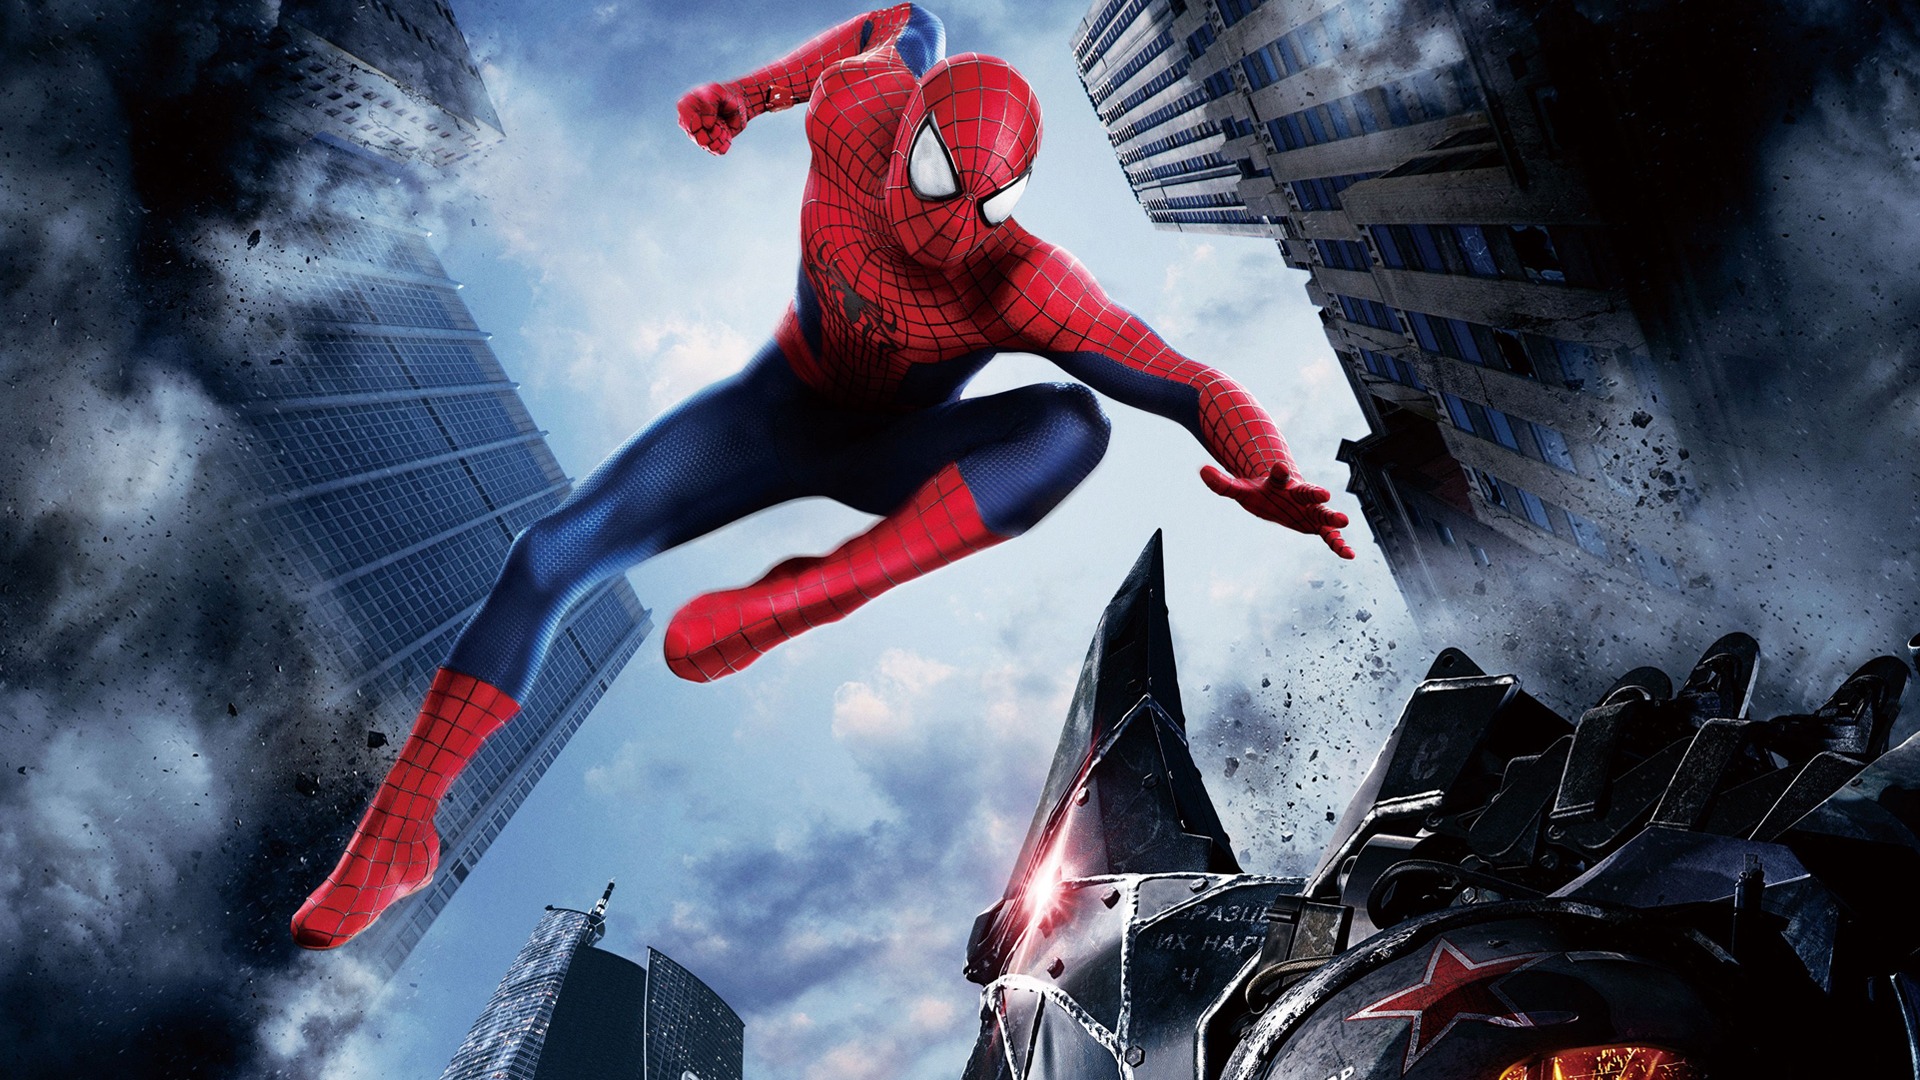 the amazing spider man vs rhino 2014 fighting movie hd 1920x1080